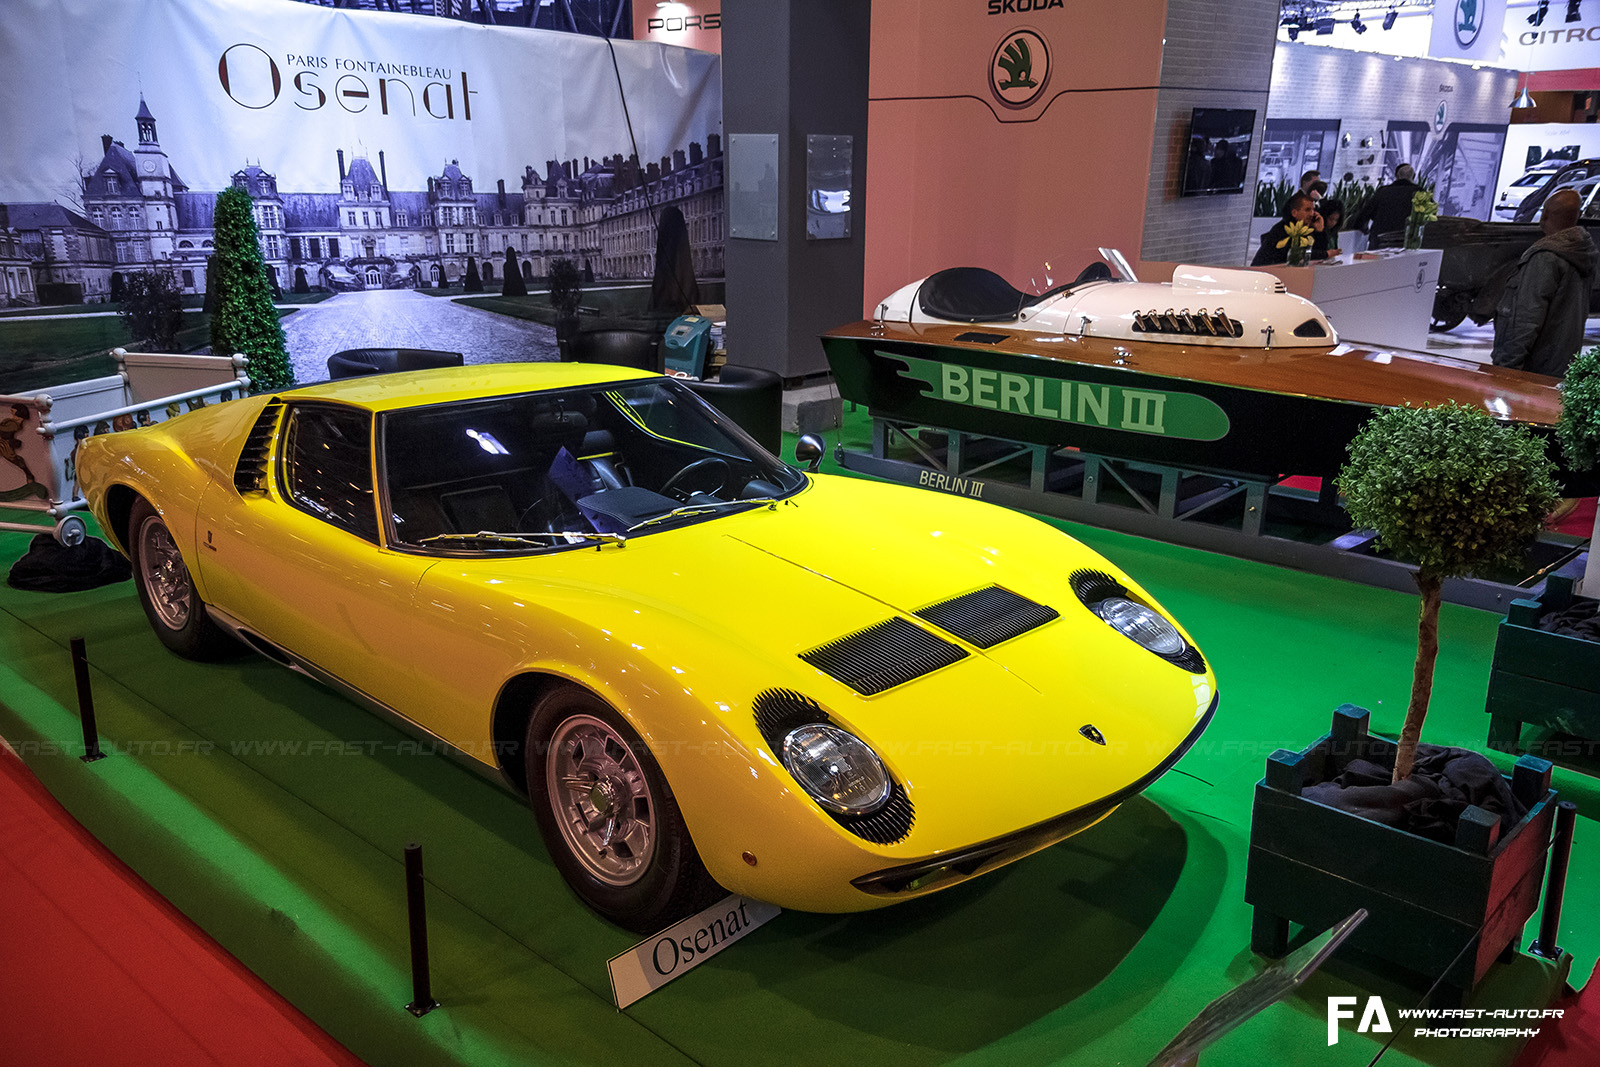 salon retromobile fevrier 2014 lamborghini miura jaune retromobile 2014 paris. Black Bedroom Furniture Sets. Home Design Ideas